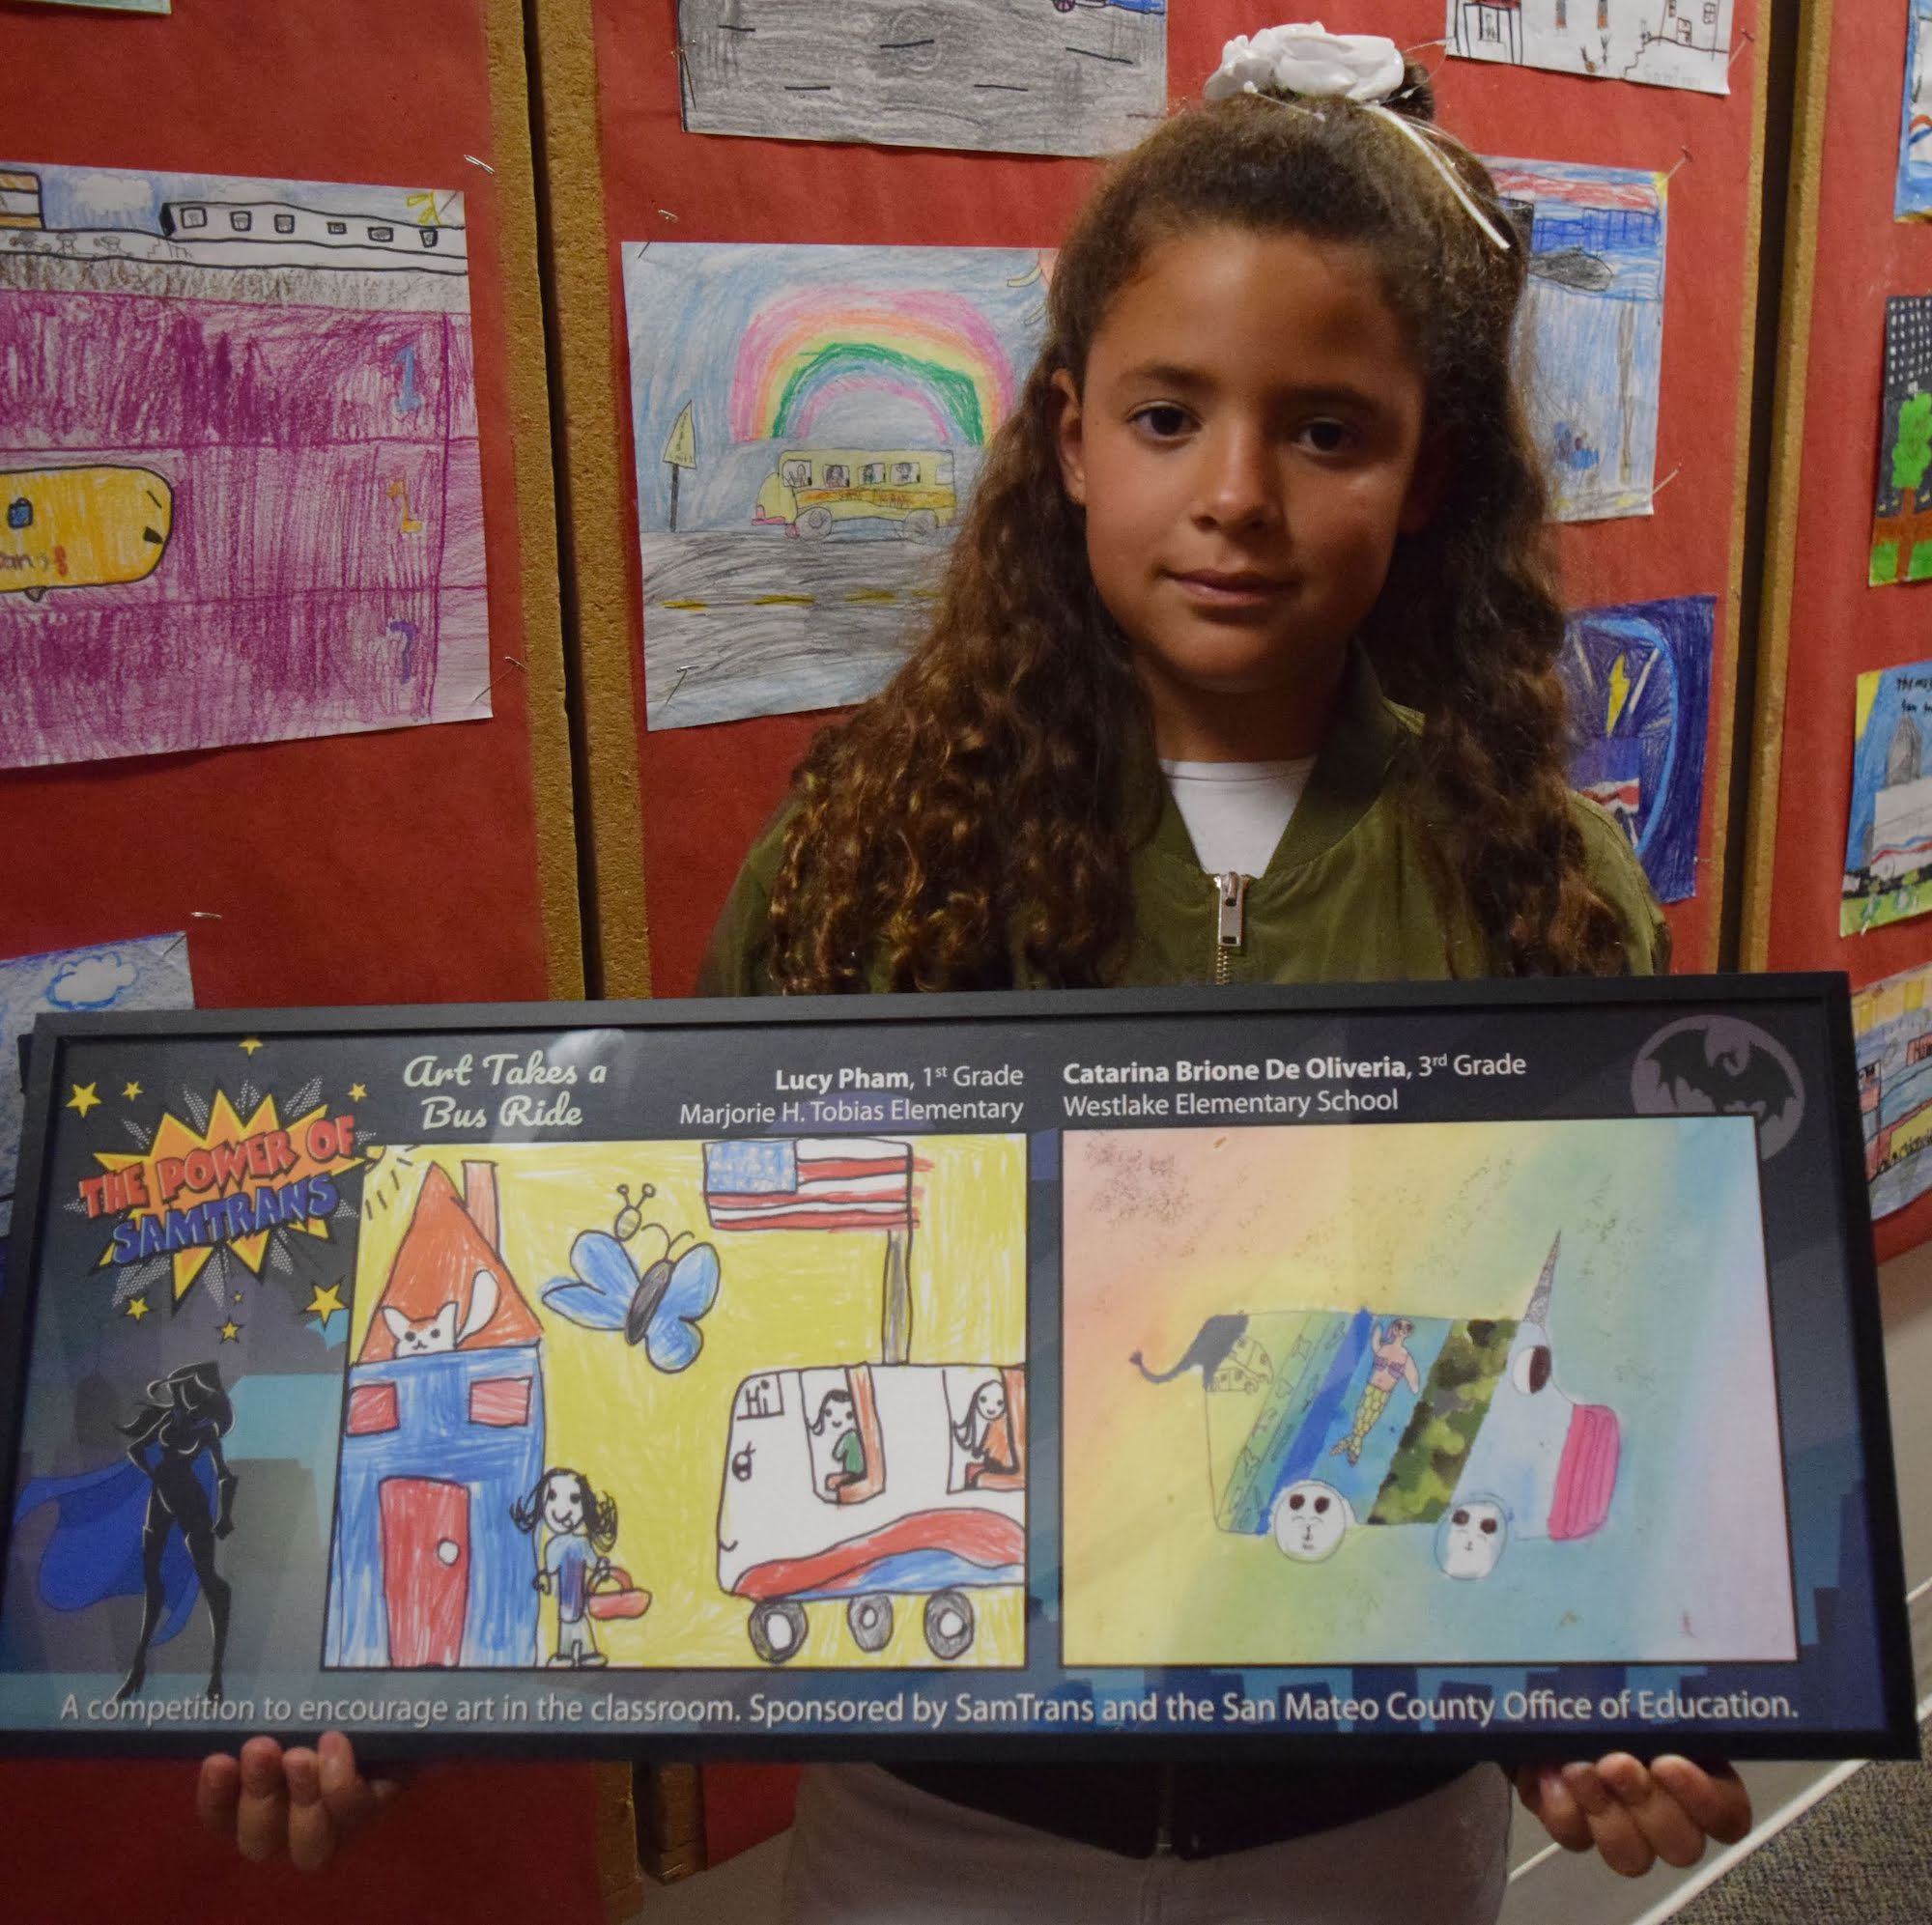 A student shows off her artwork submitted to the Art Takes a Bus Ride competition.